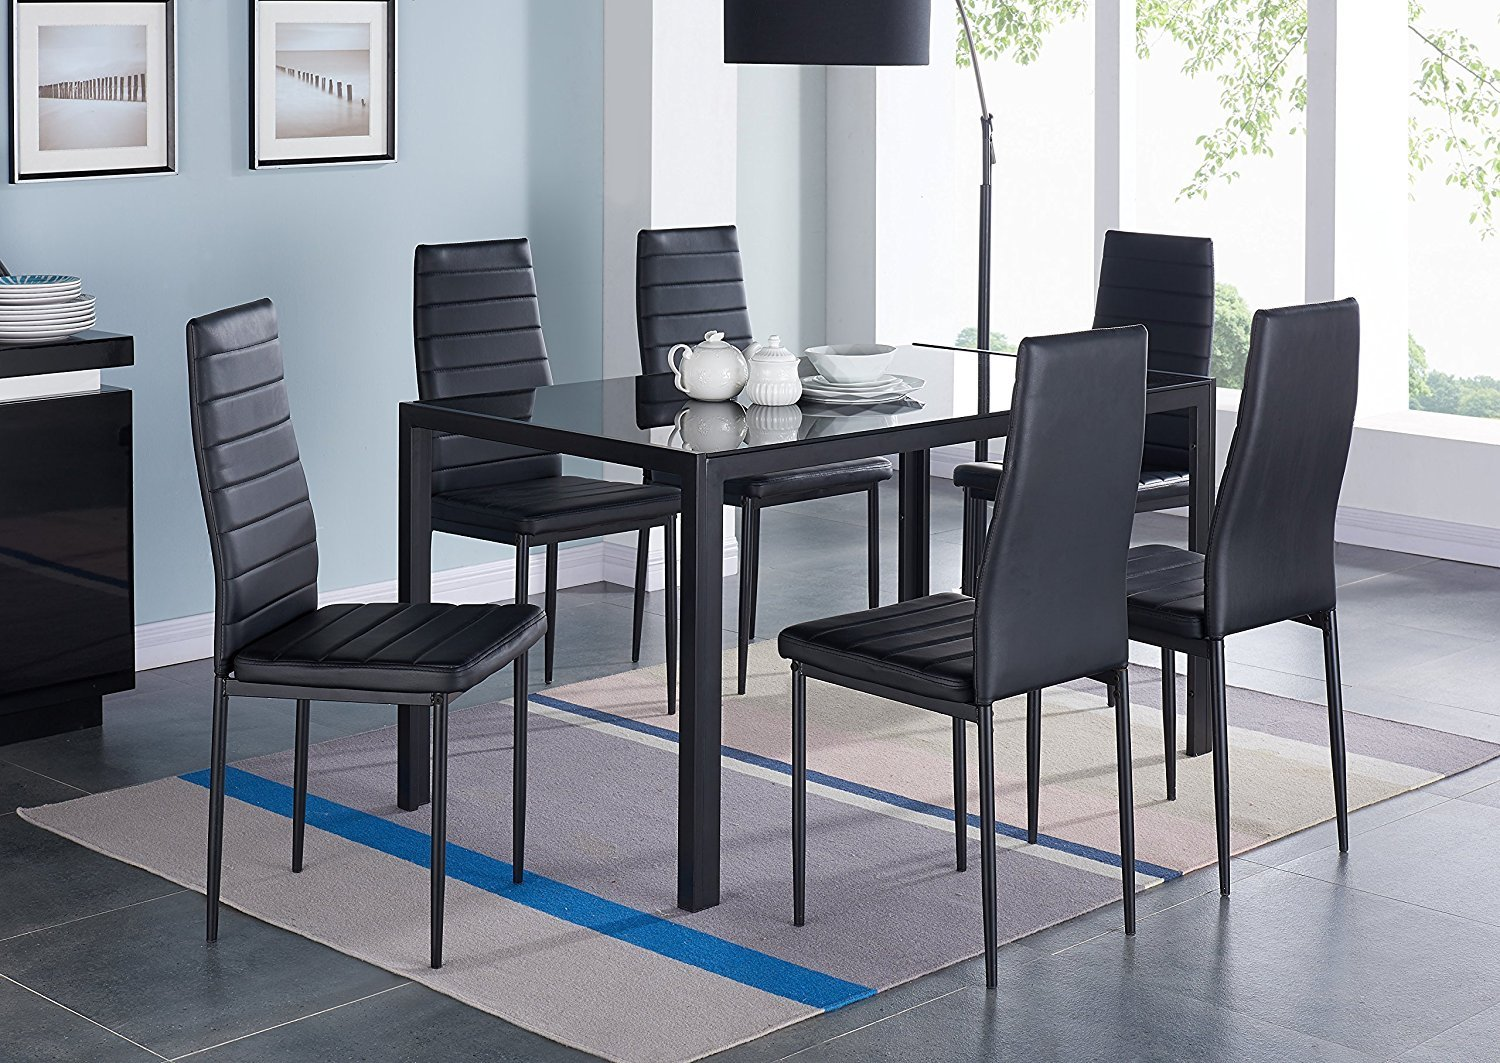 IDS Online 7 Pieces Modern Glass Dining Table Set Faxu Leather With 6 Chairs Black. by IDS Online